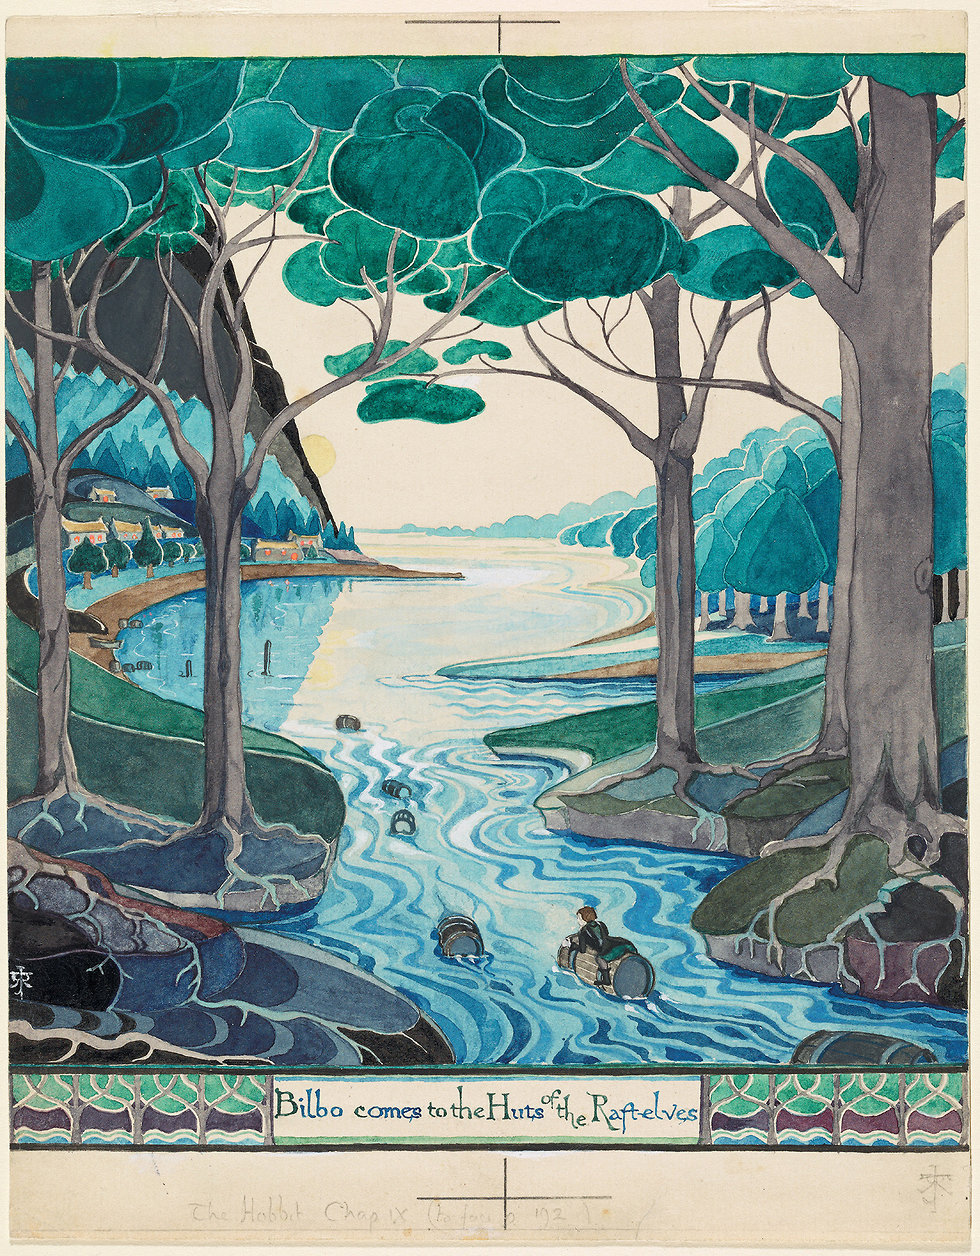 Bilbo comes to the huts of the Raft-elves (The Tolkien Estate Limited 1937)